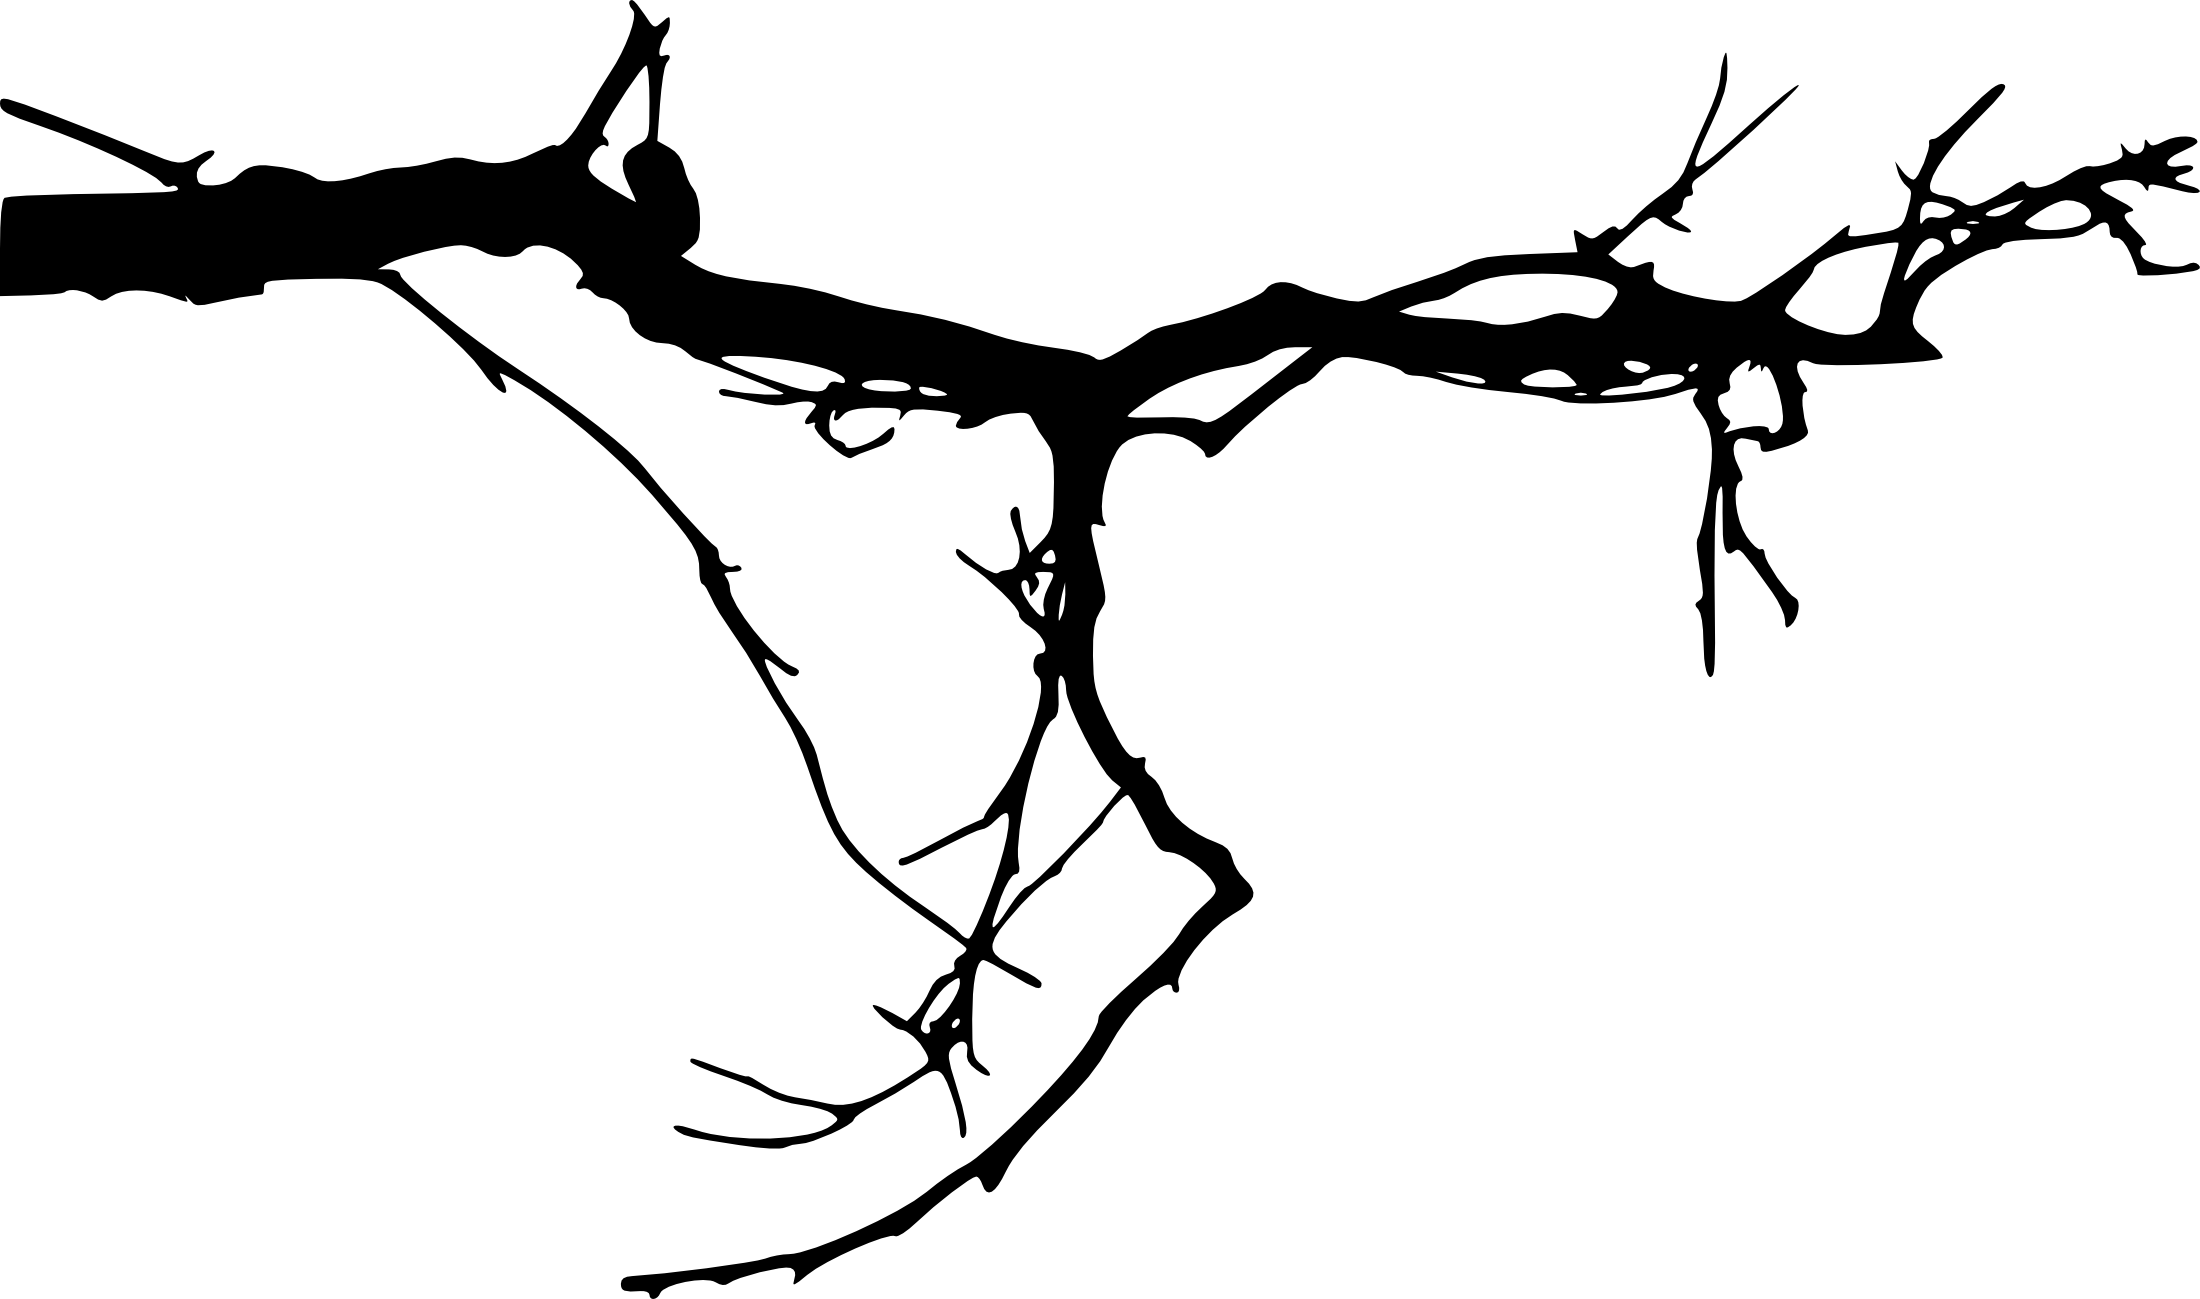 tree branch silhouette tree branch silhouette free vector silhouettes branch tree silhouette